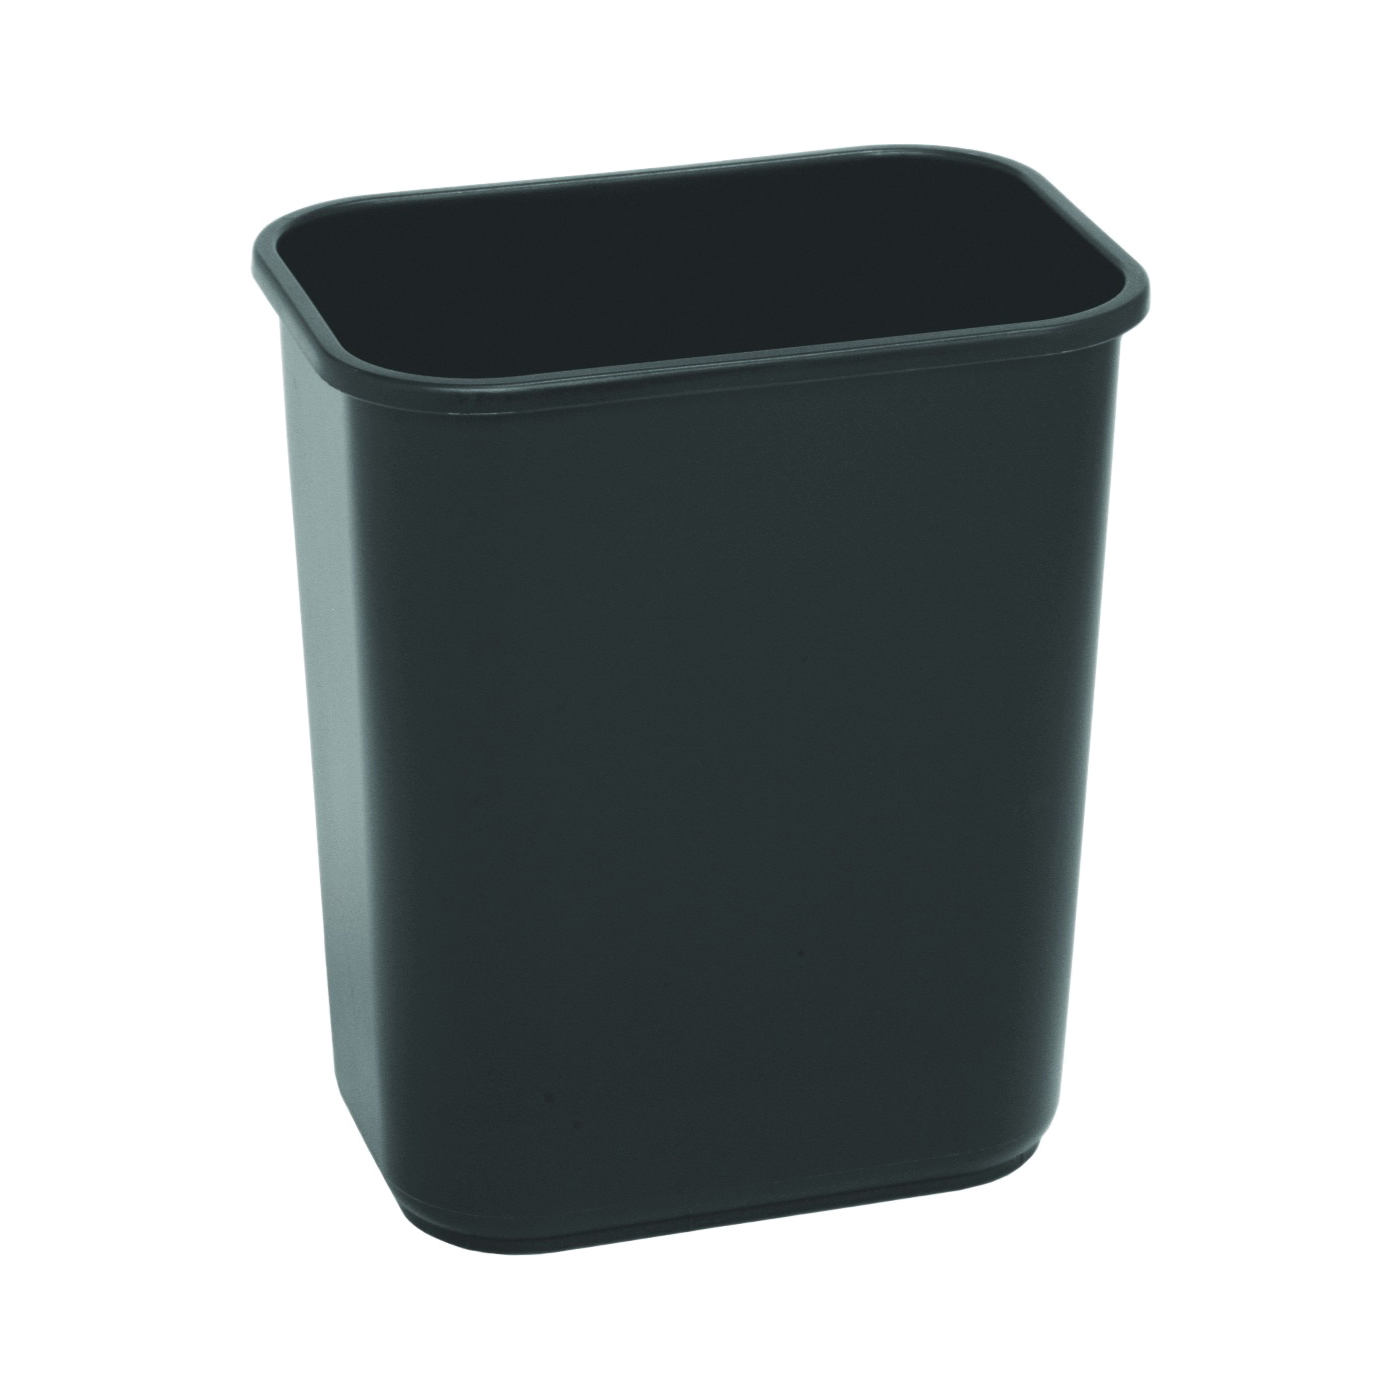 Picture of CONTINENTAL COMMERCIAL 2818BK Waste Basket, 28.125 qt Capacity, Rectangular, Plastic, Black, 10-1/2 in W, 15 in H